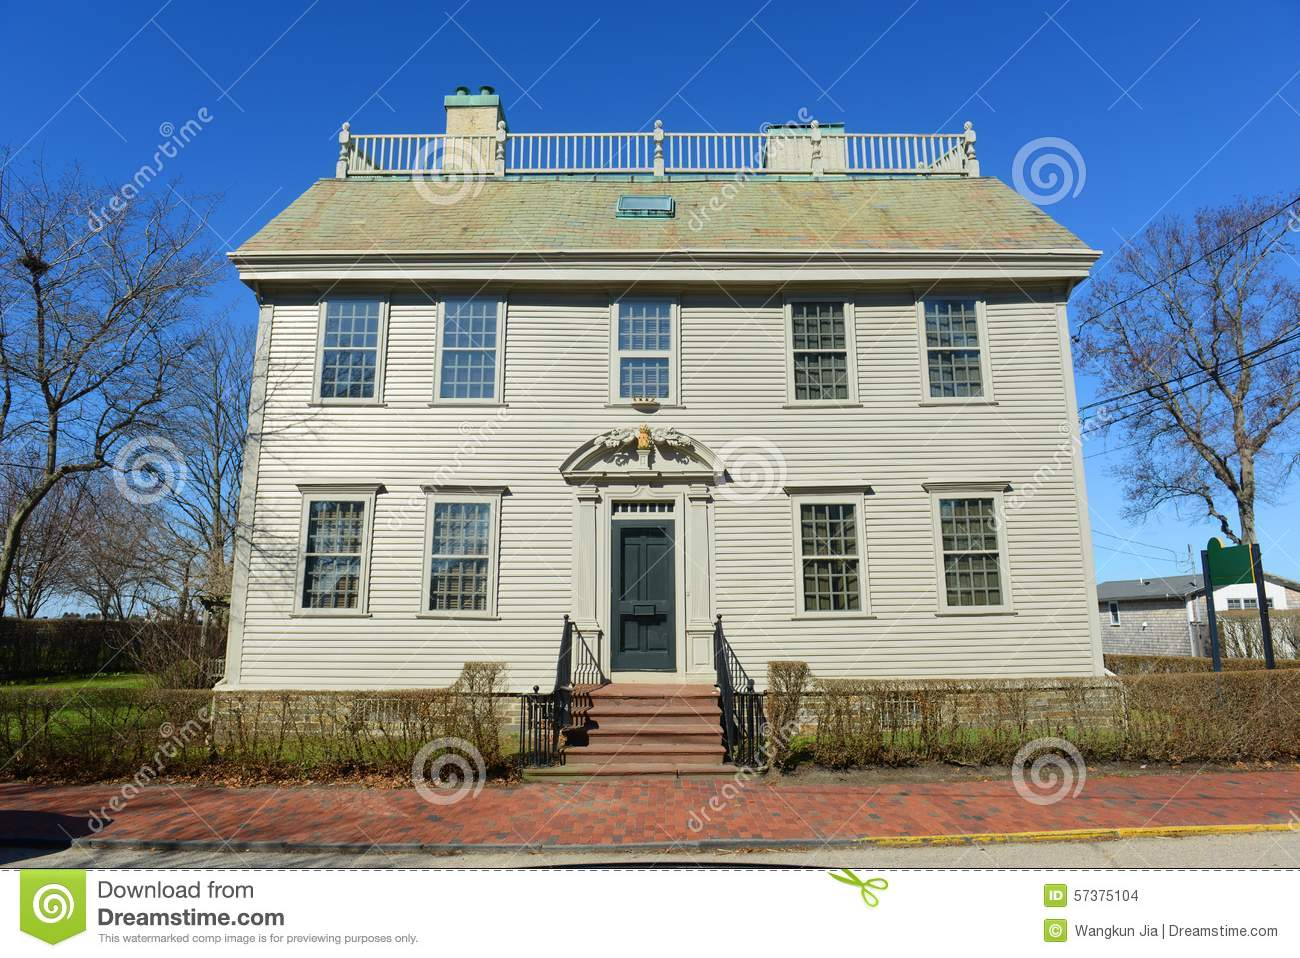 Hunter house rhode island usa stock photo image 57375104 - The home hunter ...